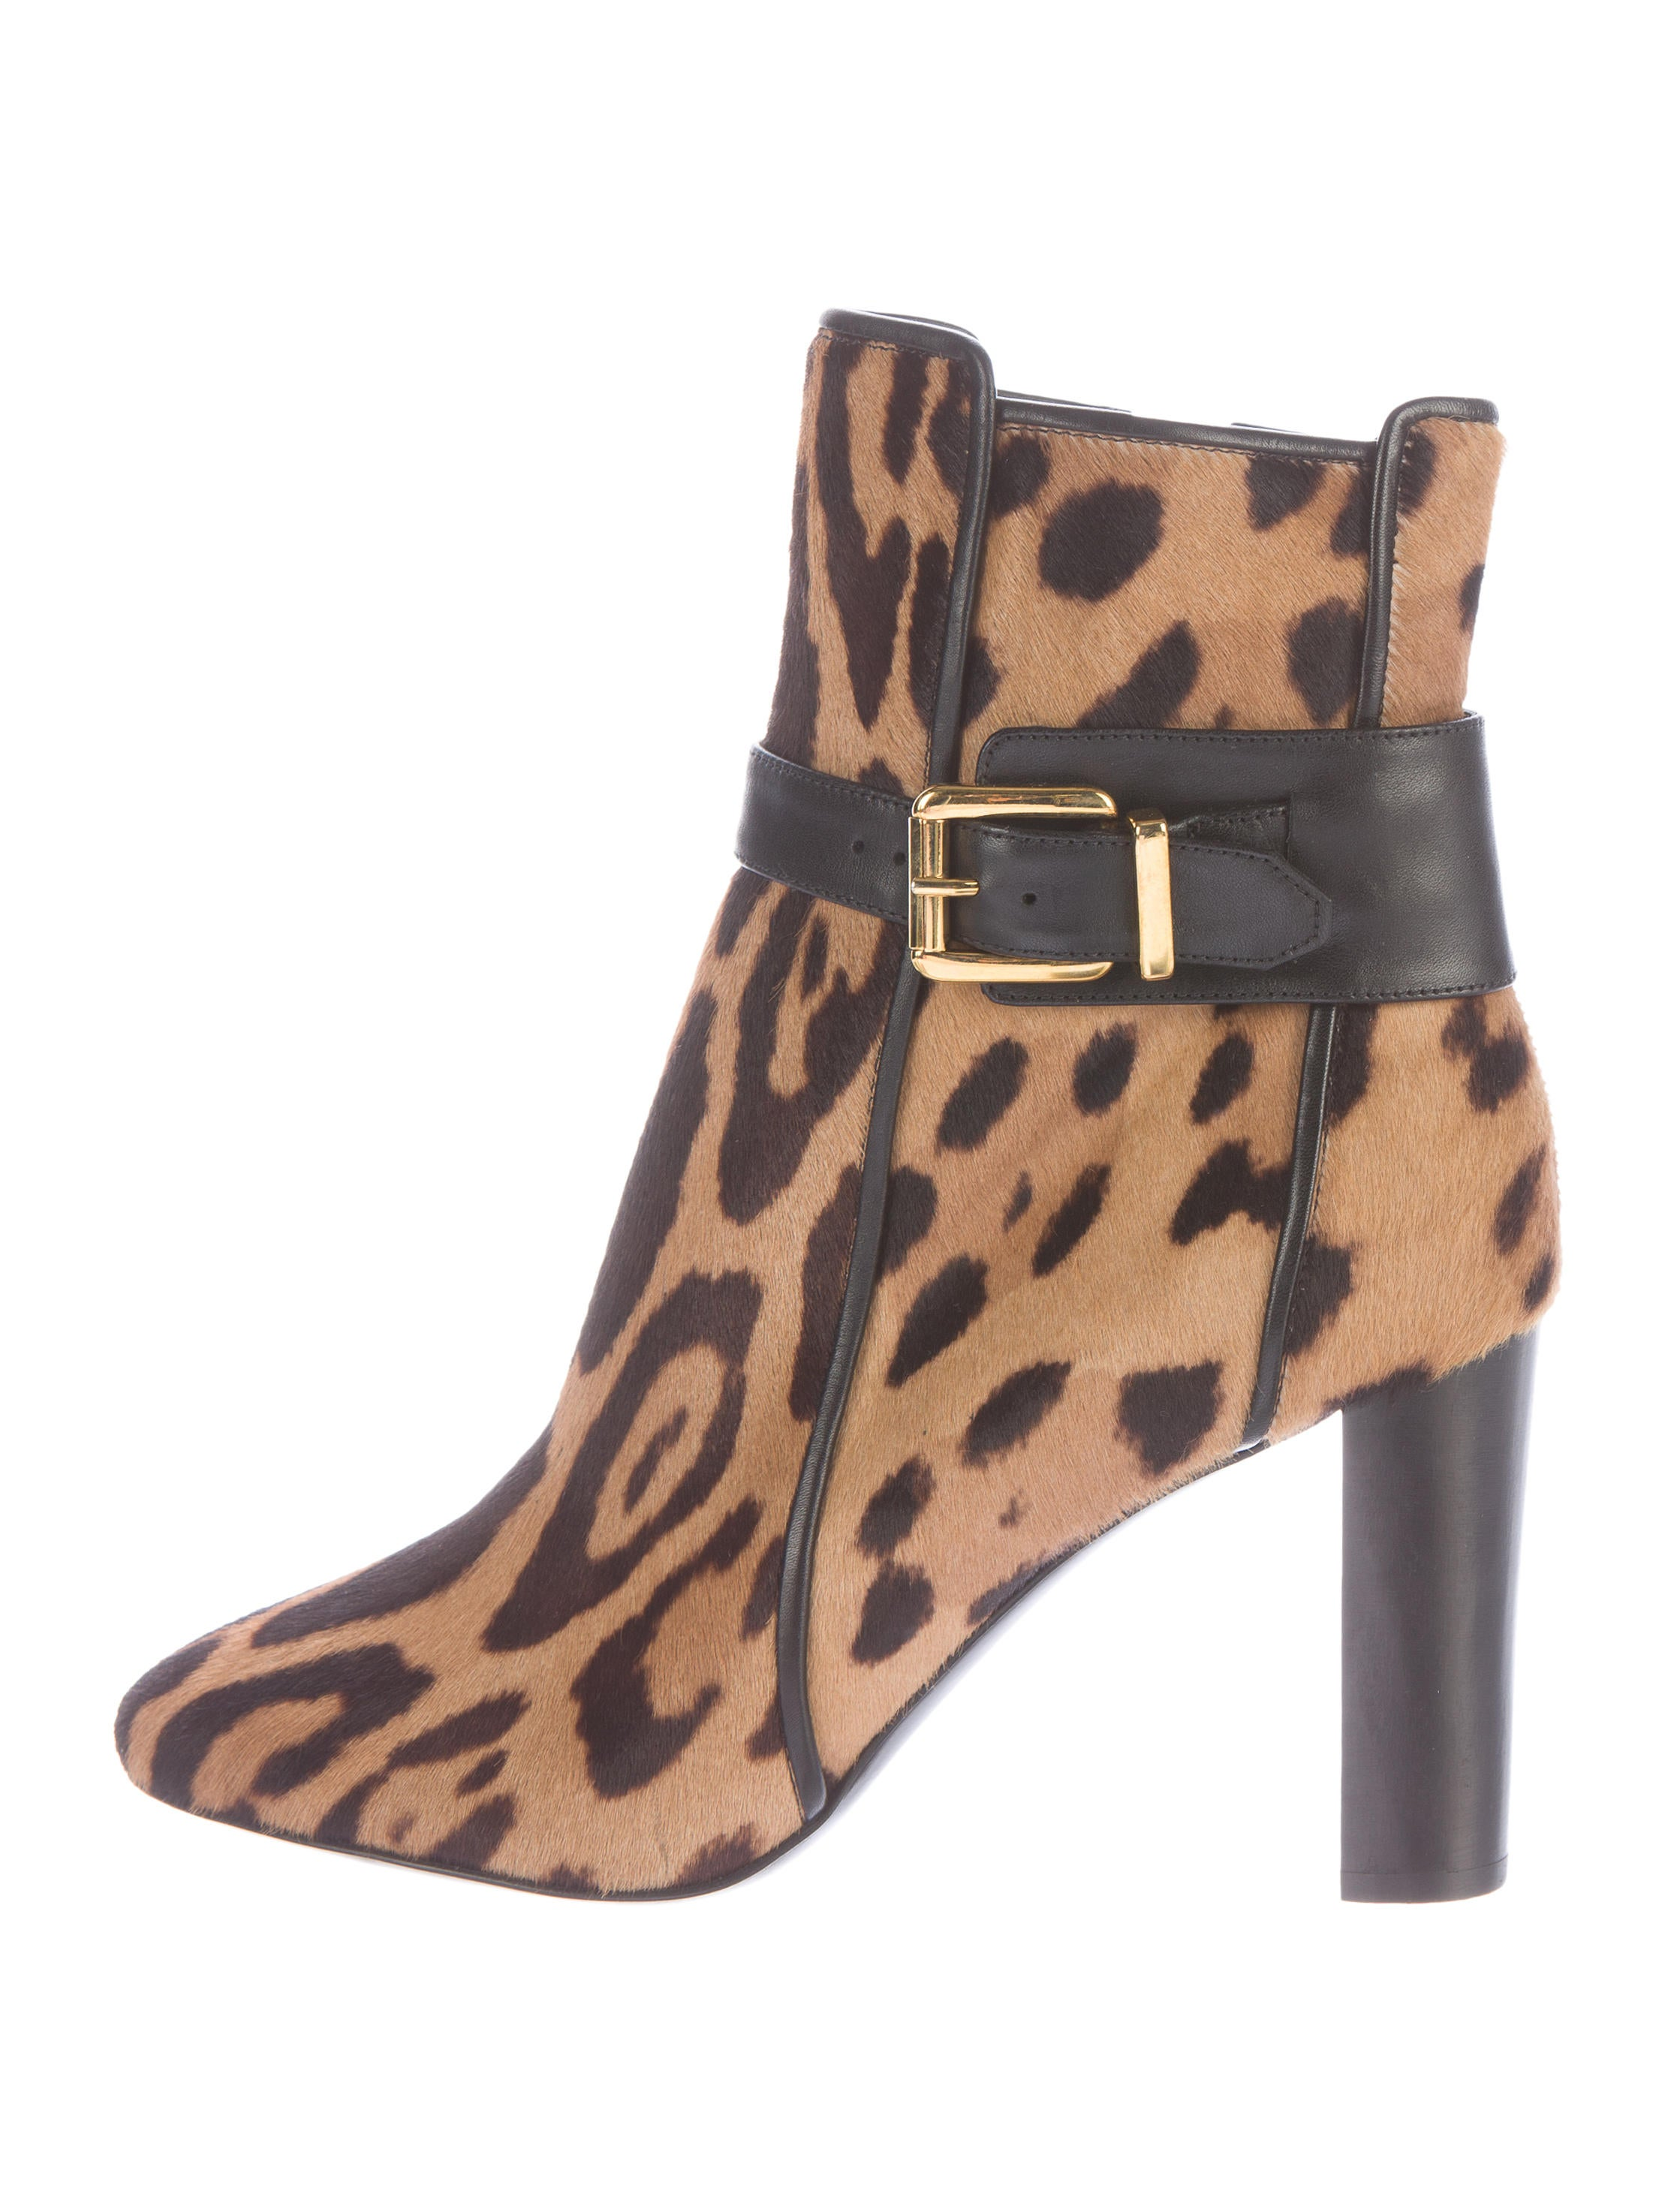 For spot-on fashion, leopard boots are tough to beat. You can find leopard boots in your favorite styles, including short ankle boots, mid-calf heights, and those extending above the knee. However, patterns of the world-famous feline give leopard print boots a healthy dose of feminine flair and attitude.